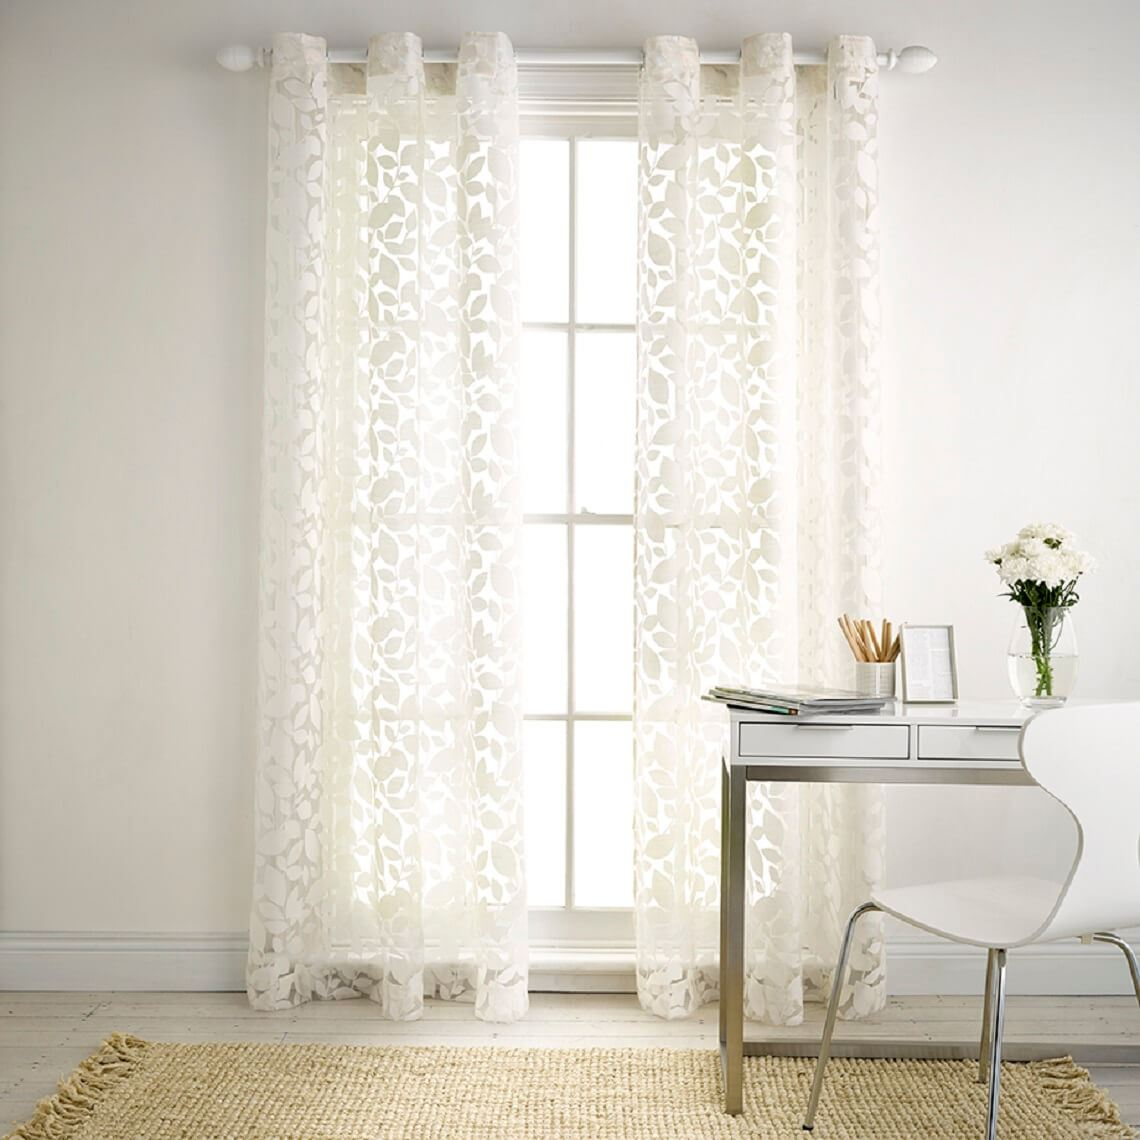 Silhouette Sheer Eyelet Curtain Size W 140cm x D 0cm x H 230cm in Antique White 100% Polyester/Stainless Steel Freedom by Freedom, a Curtains for sale on Style Sourcebook